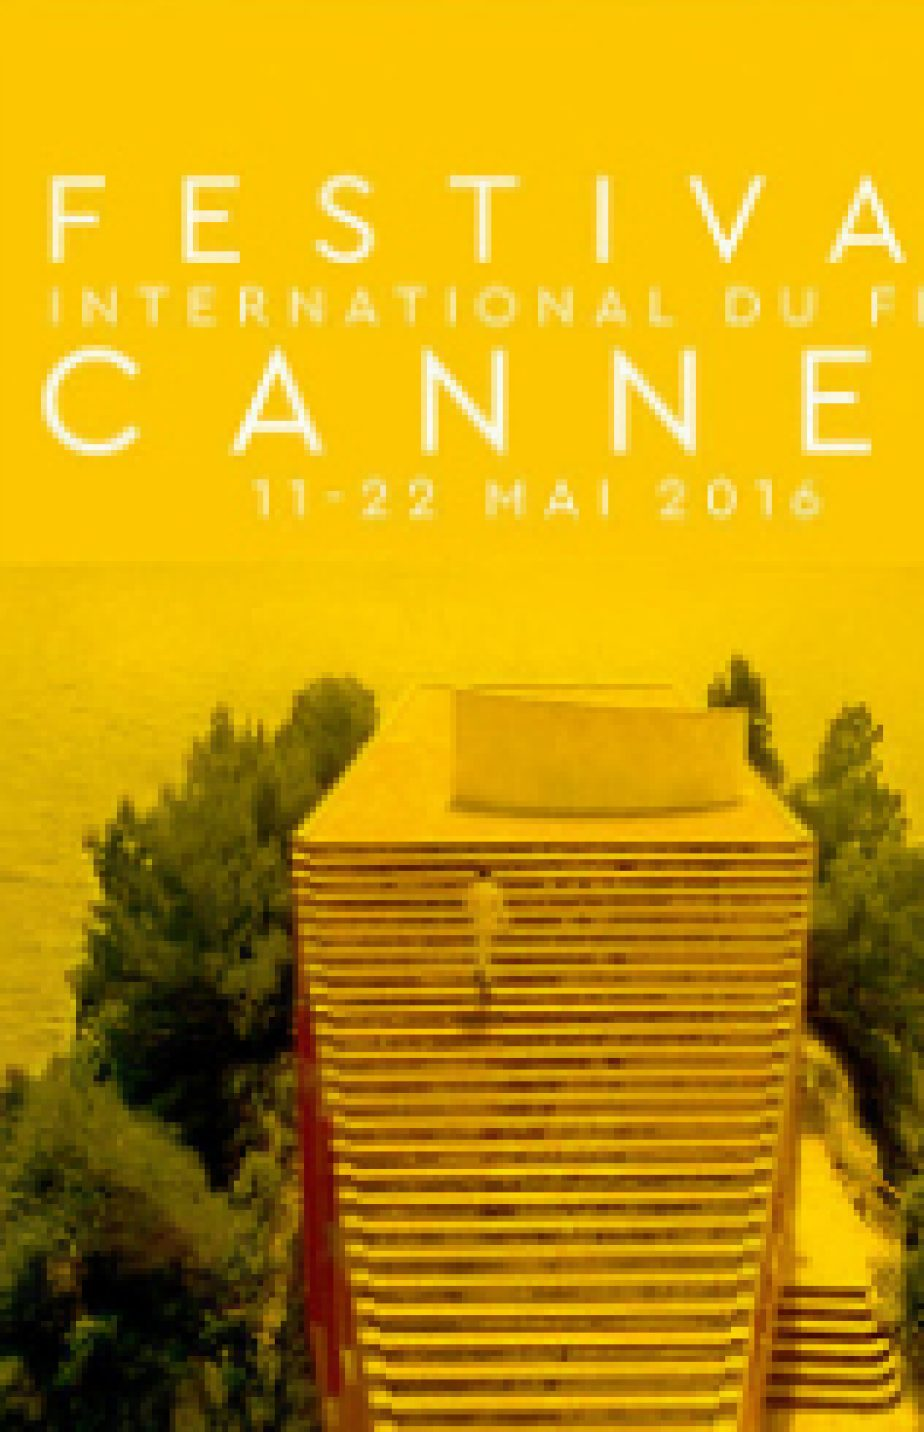 14th May Lunch on the Vegaluna Beach in central Cannes during the 69th International Film Festival